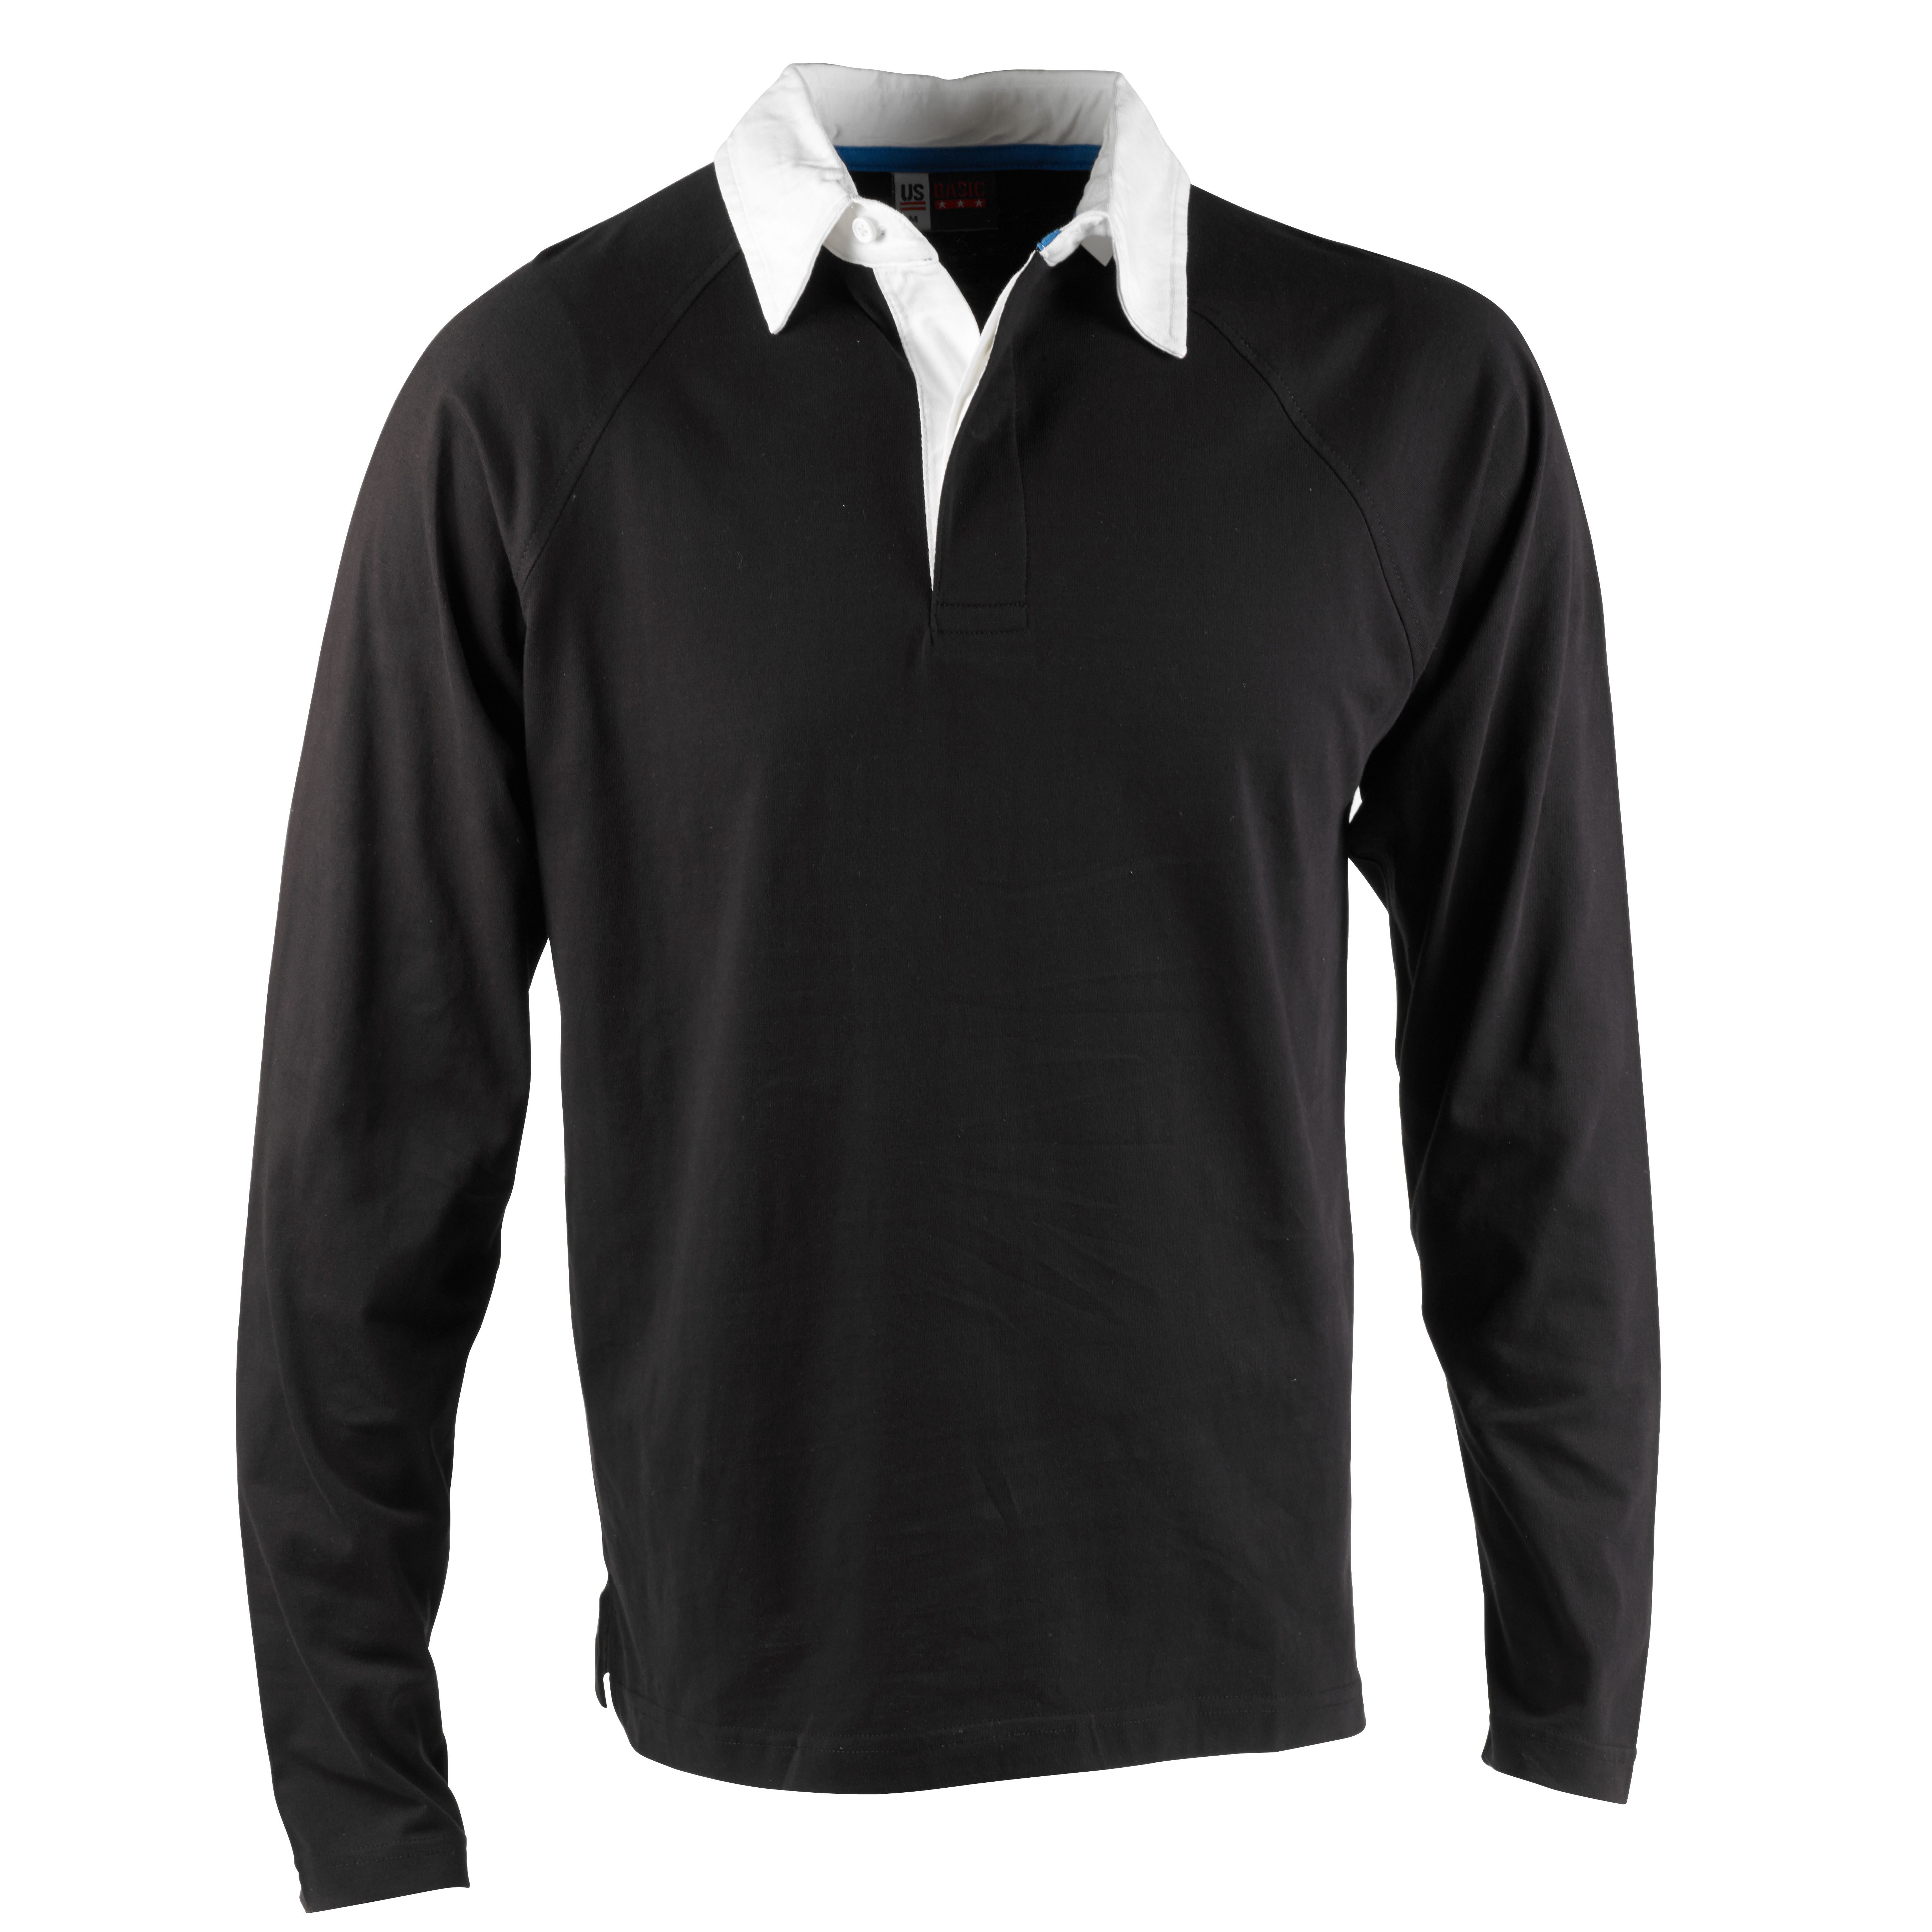 c22fcfd1 Details about Mens US Basic Black Rugby Shirt Polo White Collar Top Long  Sleeve 100% Cotton